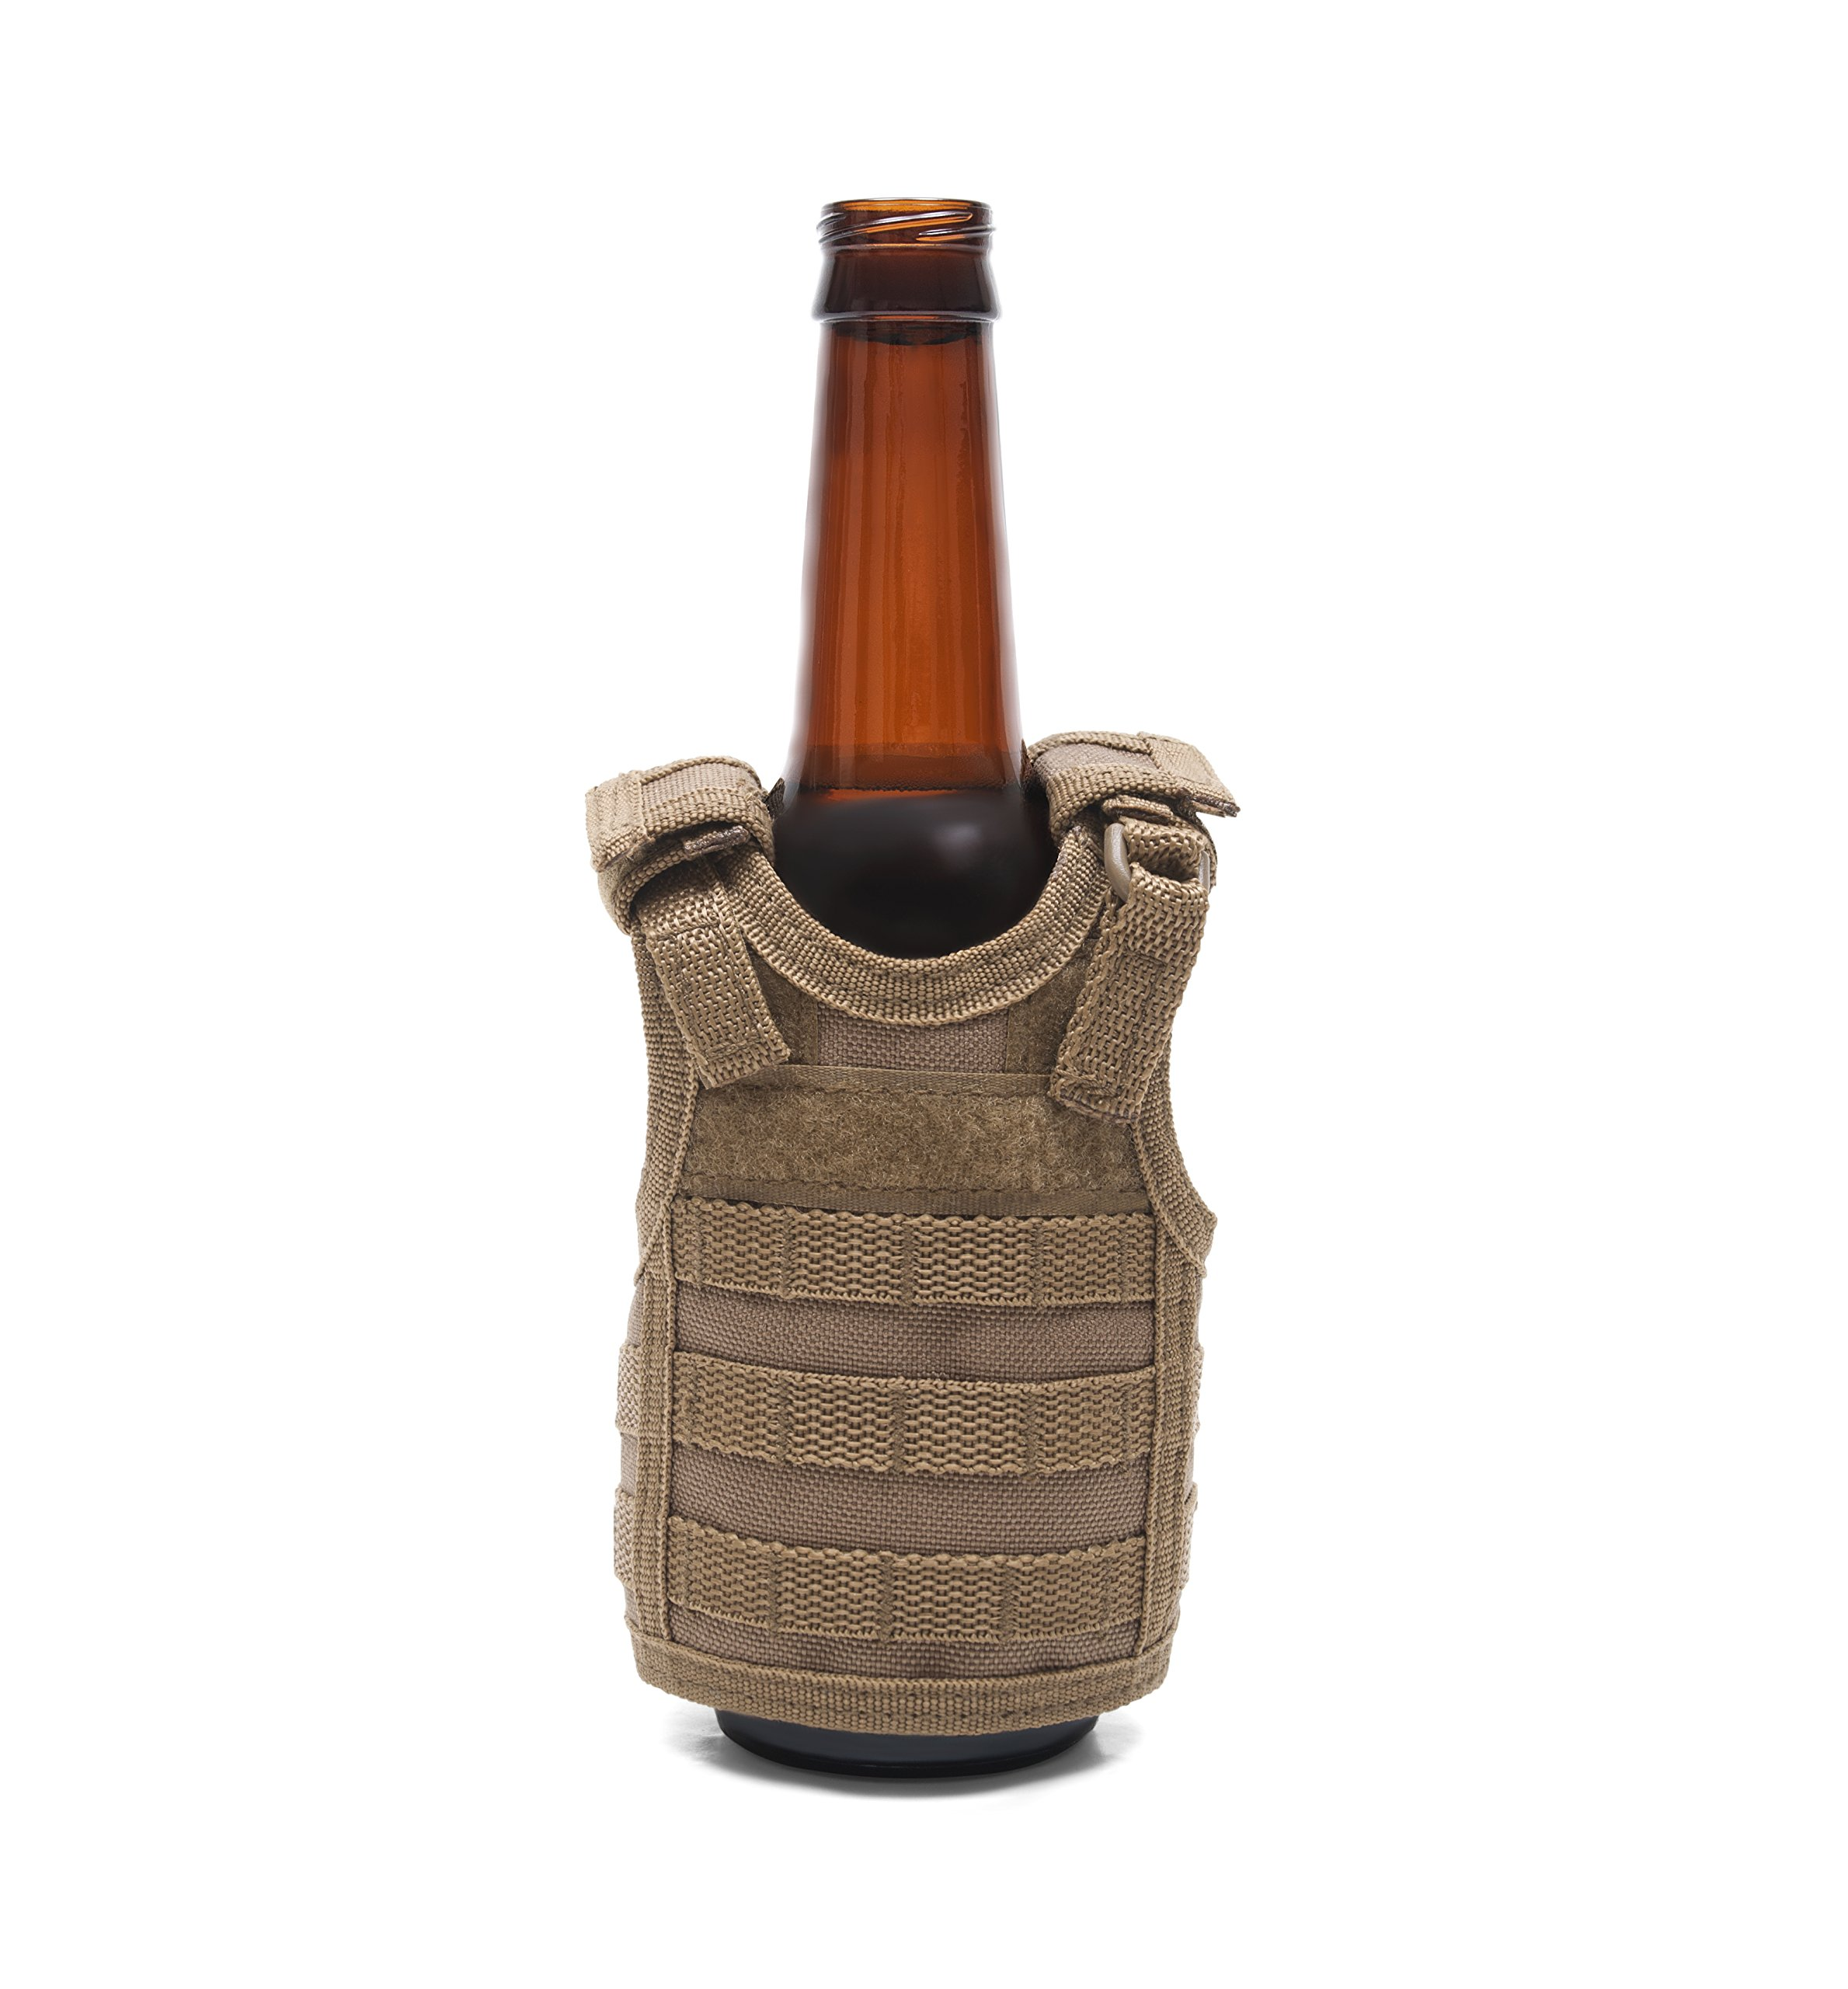 Frontier Tactical Gear Tactical Premium Beer Military Molle Mini Miniature Vests Beverage Cooler for 12oz or 16oz beverages cans AND bottles - adjustable shoulder straps - Coyote Brown by Frontier Tactical Gear